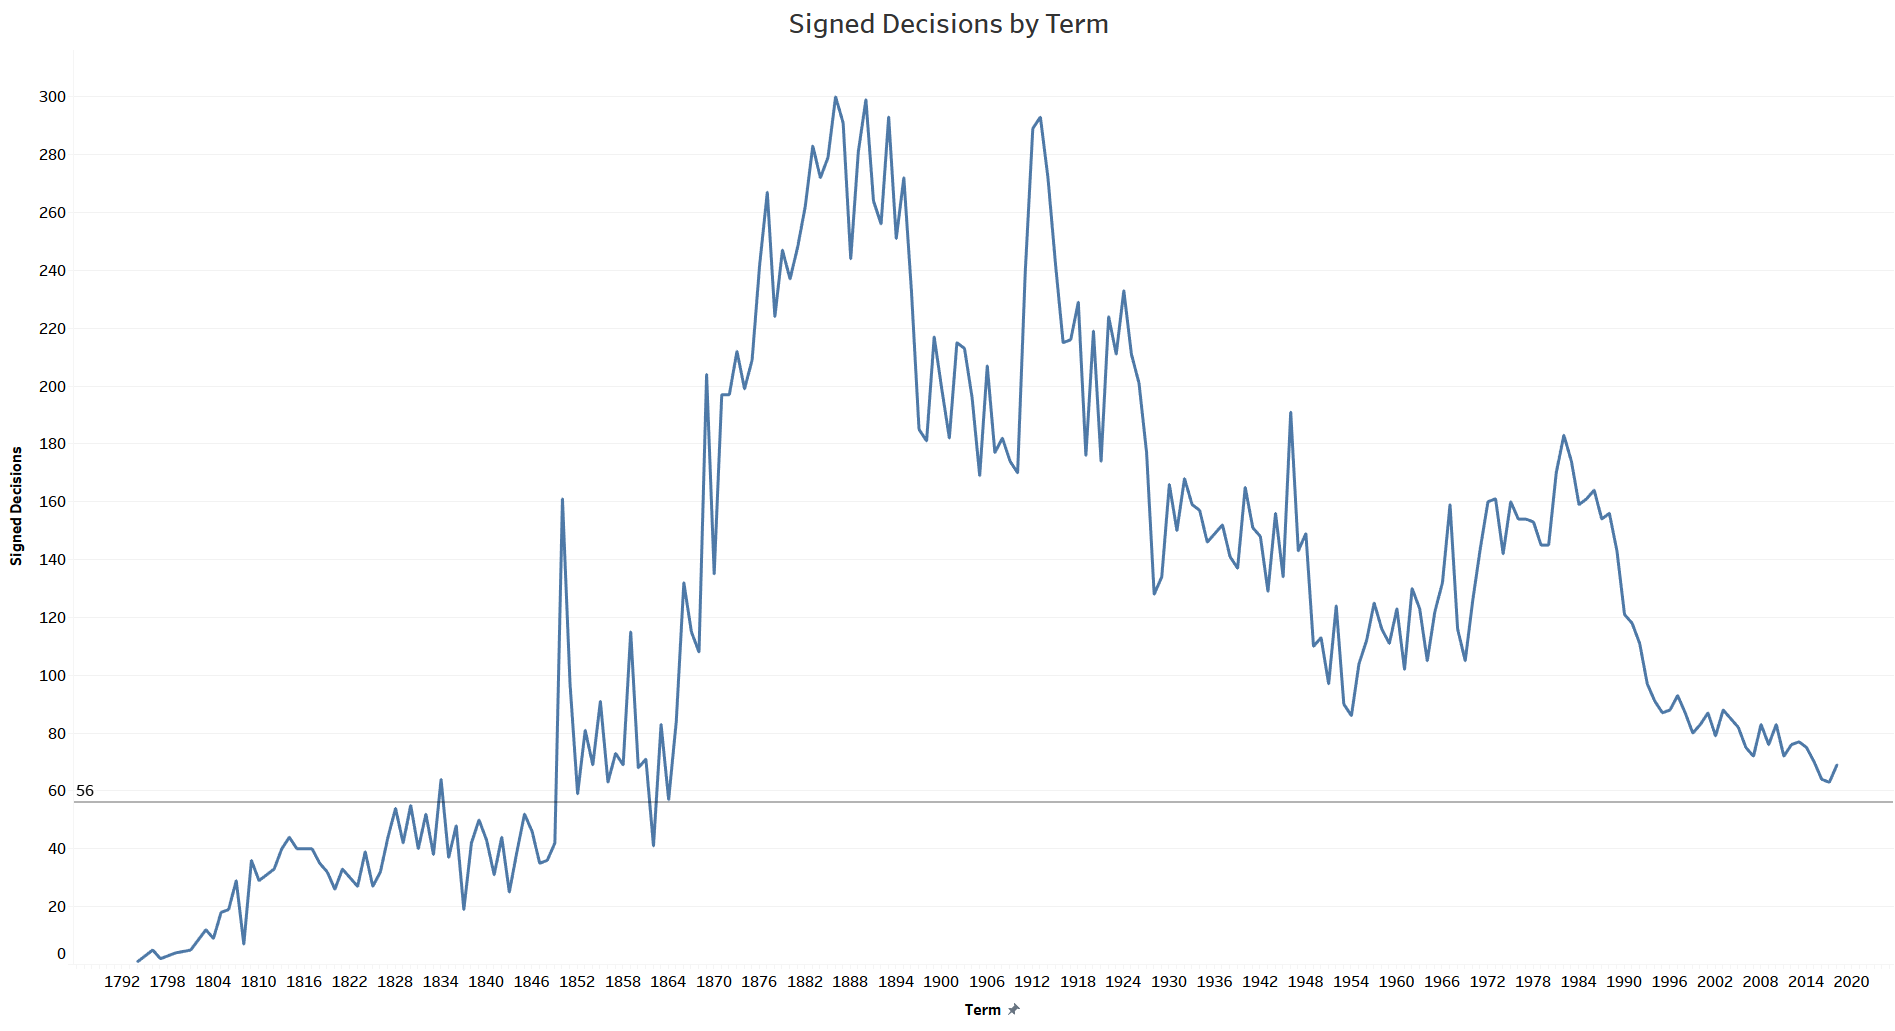 The chart shows the number of signed Supreme  Court decisions by term from 1792 to 2020. The number consistently rose over the course of the 19th and early 20th centuries, with many years between 1882 and 1924 featuring 300 signed decisions. Since the 1920s, the total has been in decline, is down to less than 80 a year since 2008, and down to less than 60 a year in the last couple of years